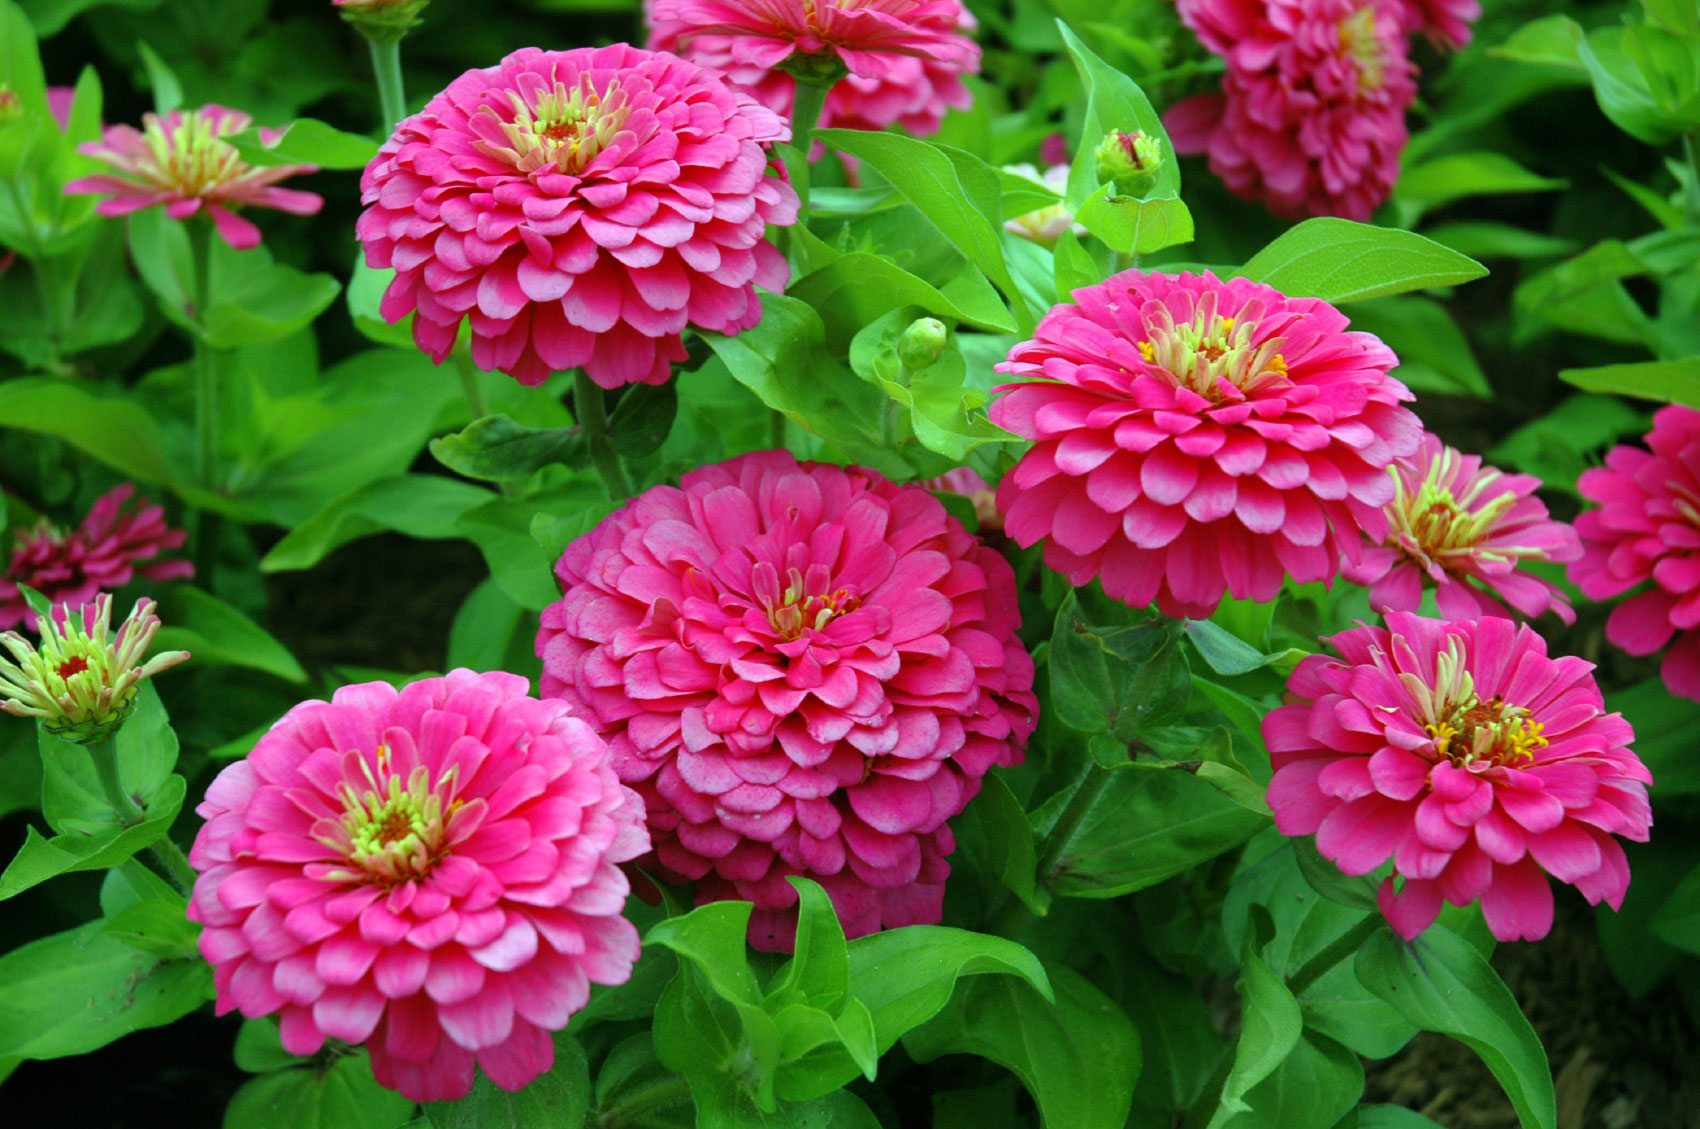 Growing Zinnia Plants: Tips On How To Plant Zinnias